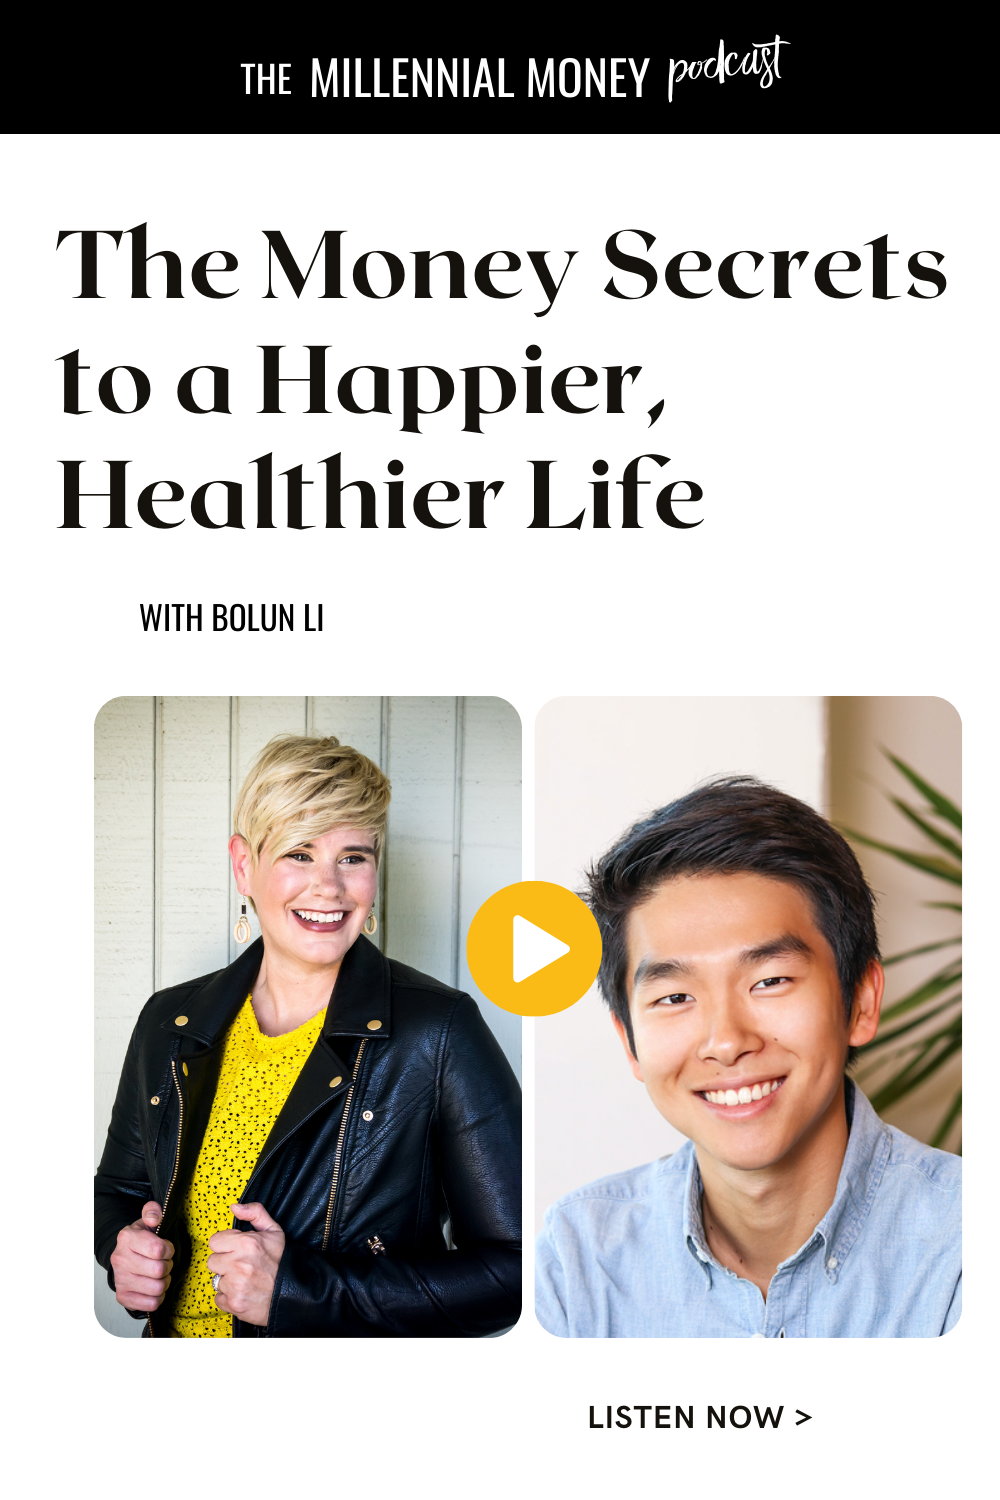 Podcast episode about creating a healthier and happier life with Bolun Li